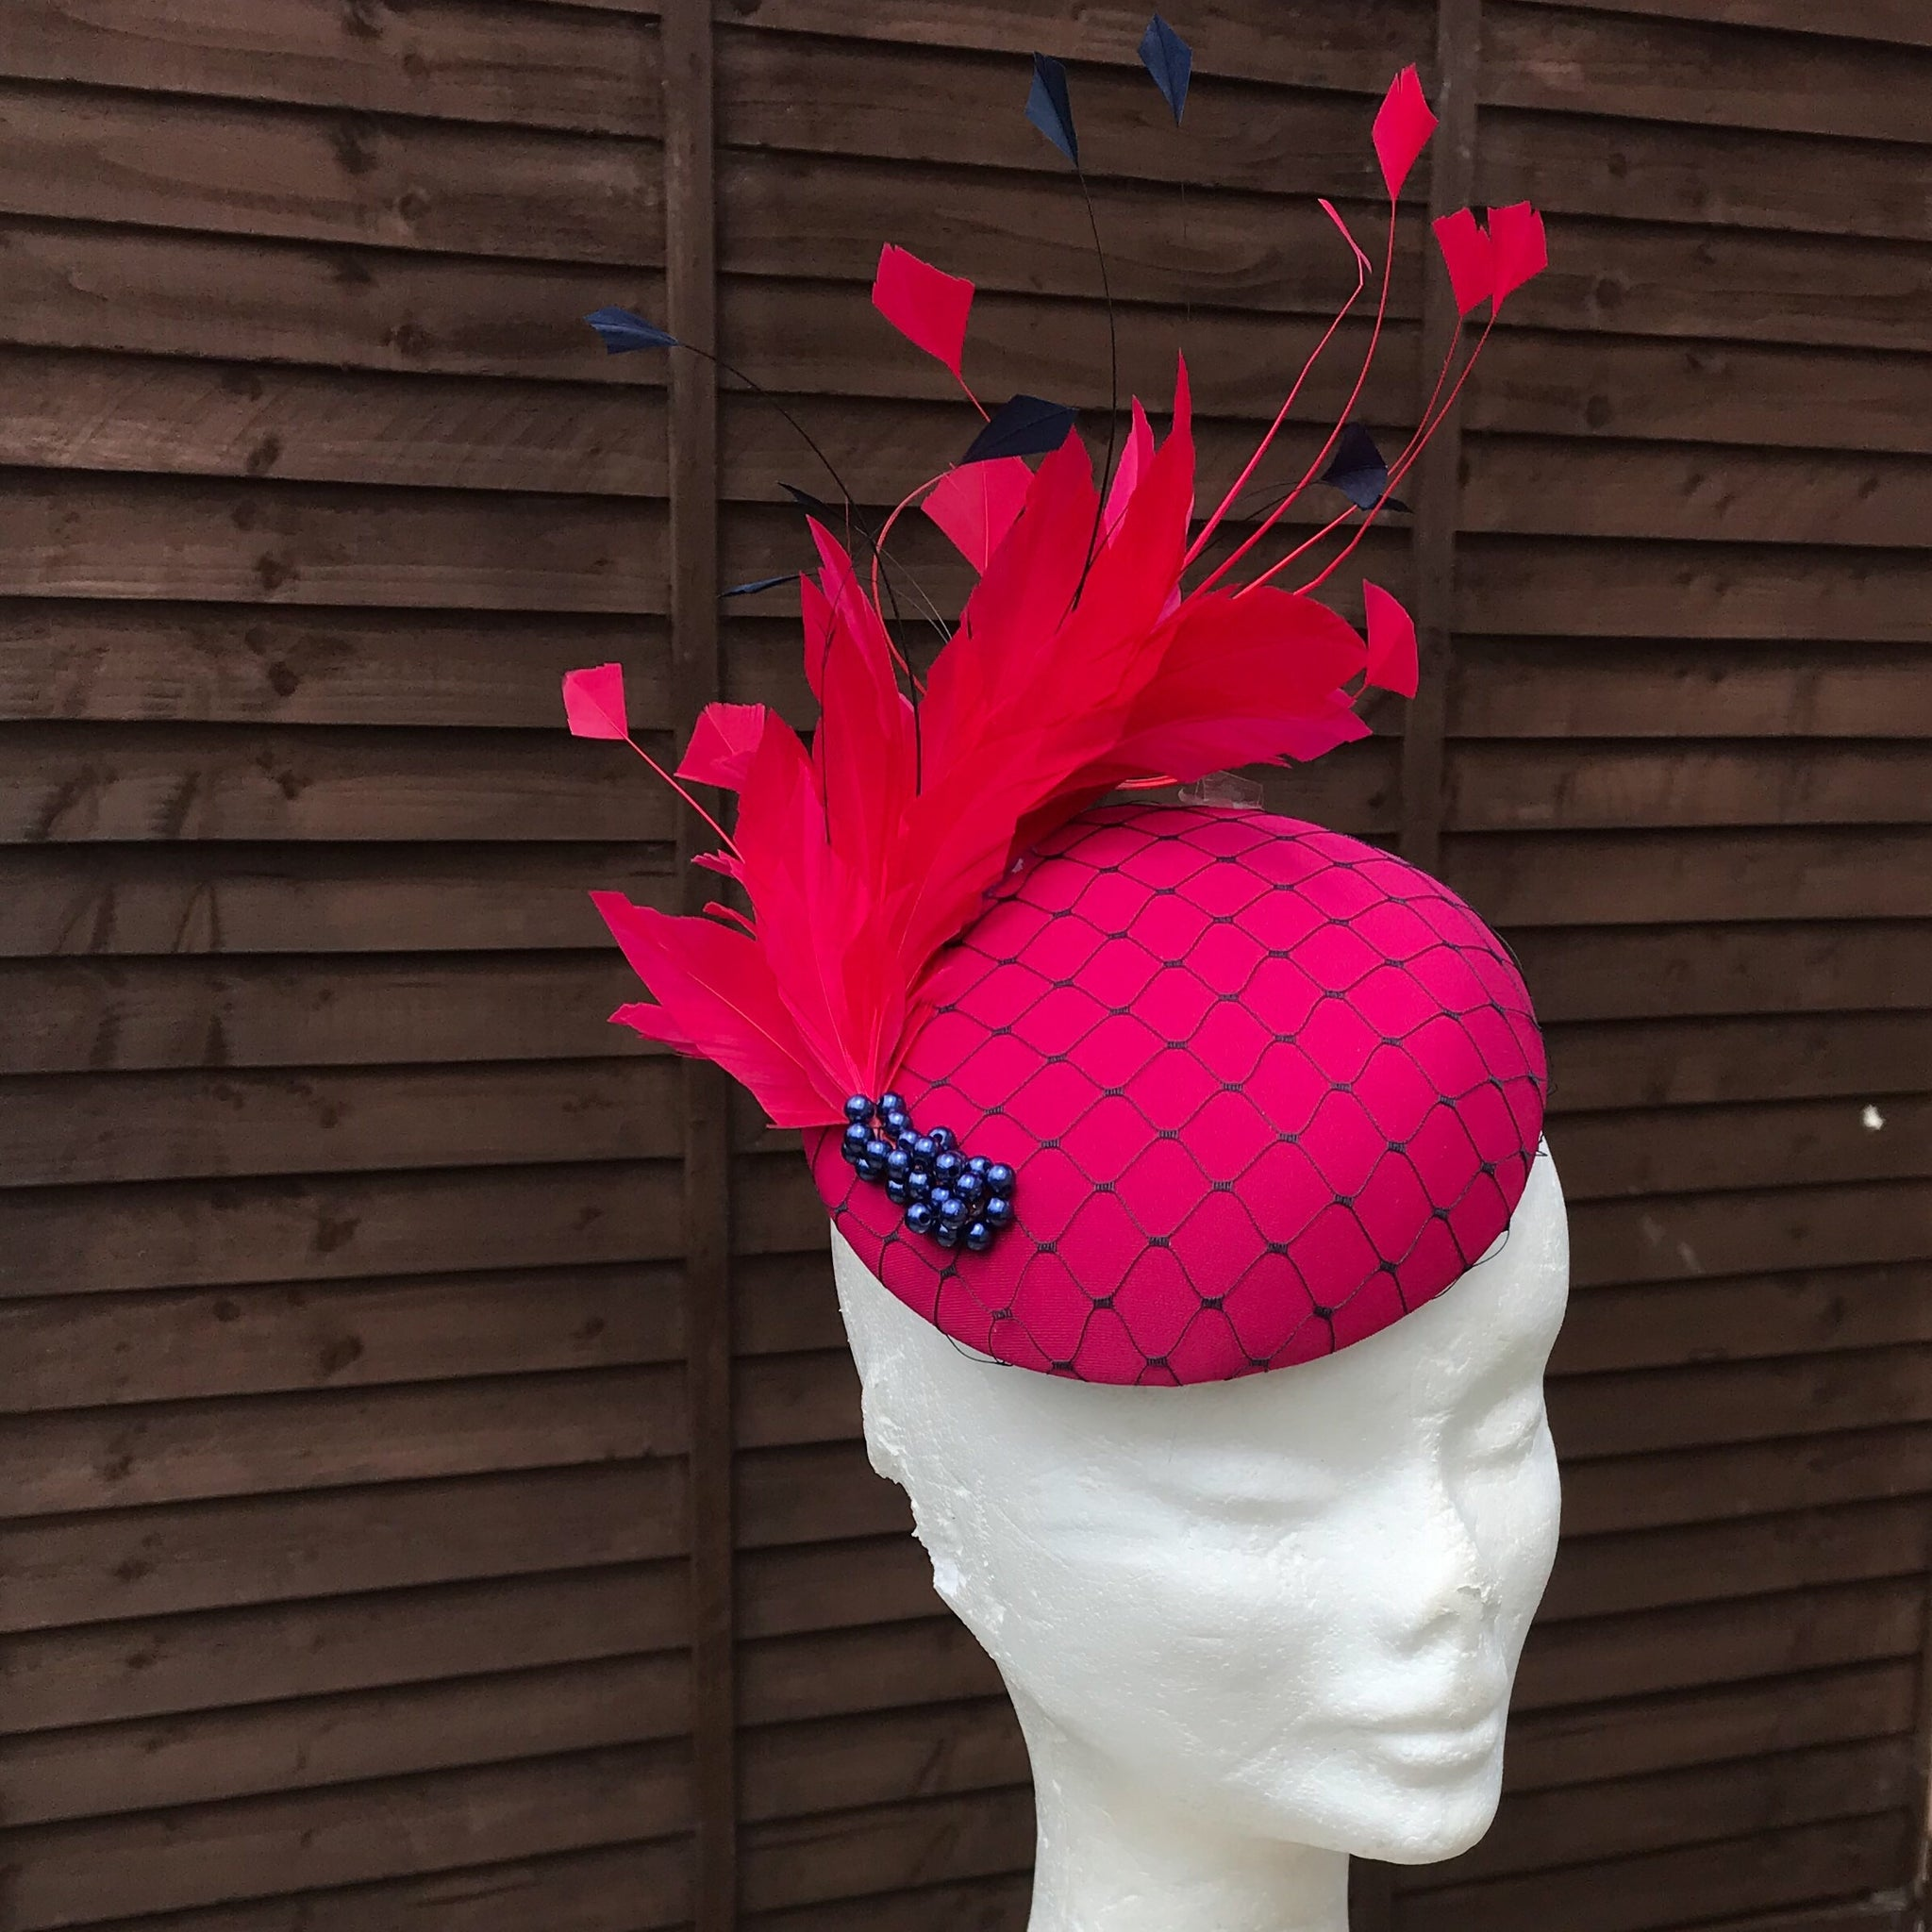 ... Cerise Pink and Navy Fascinator - My Fascinators a45660b7f5a